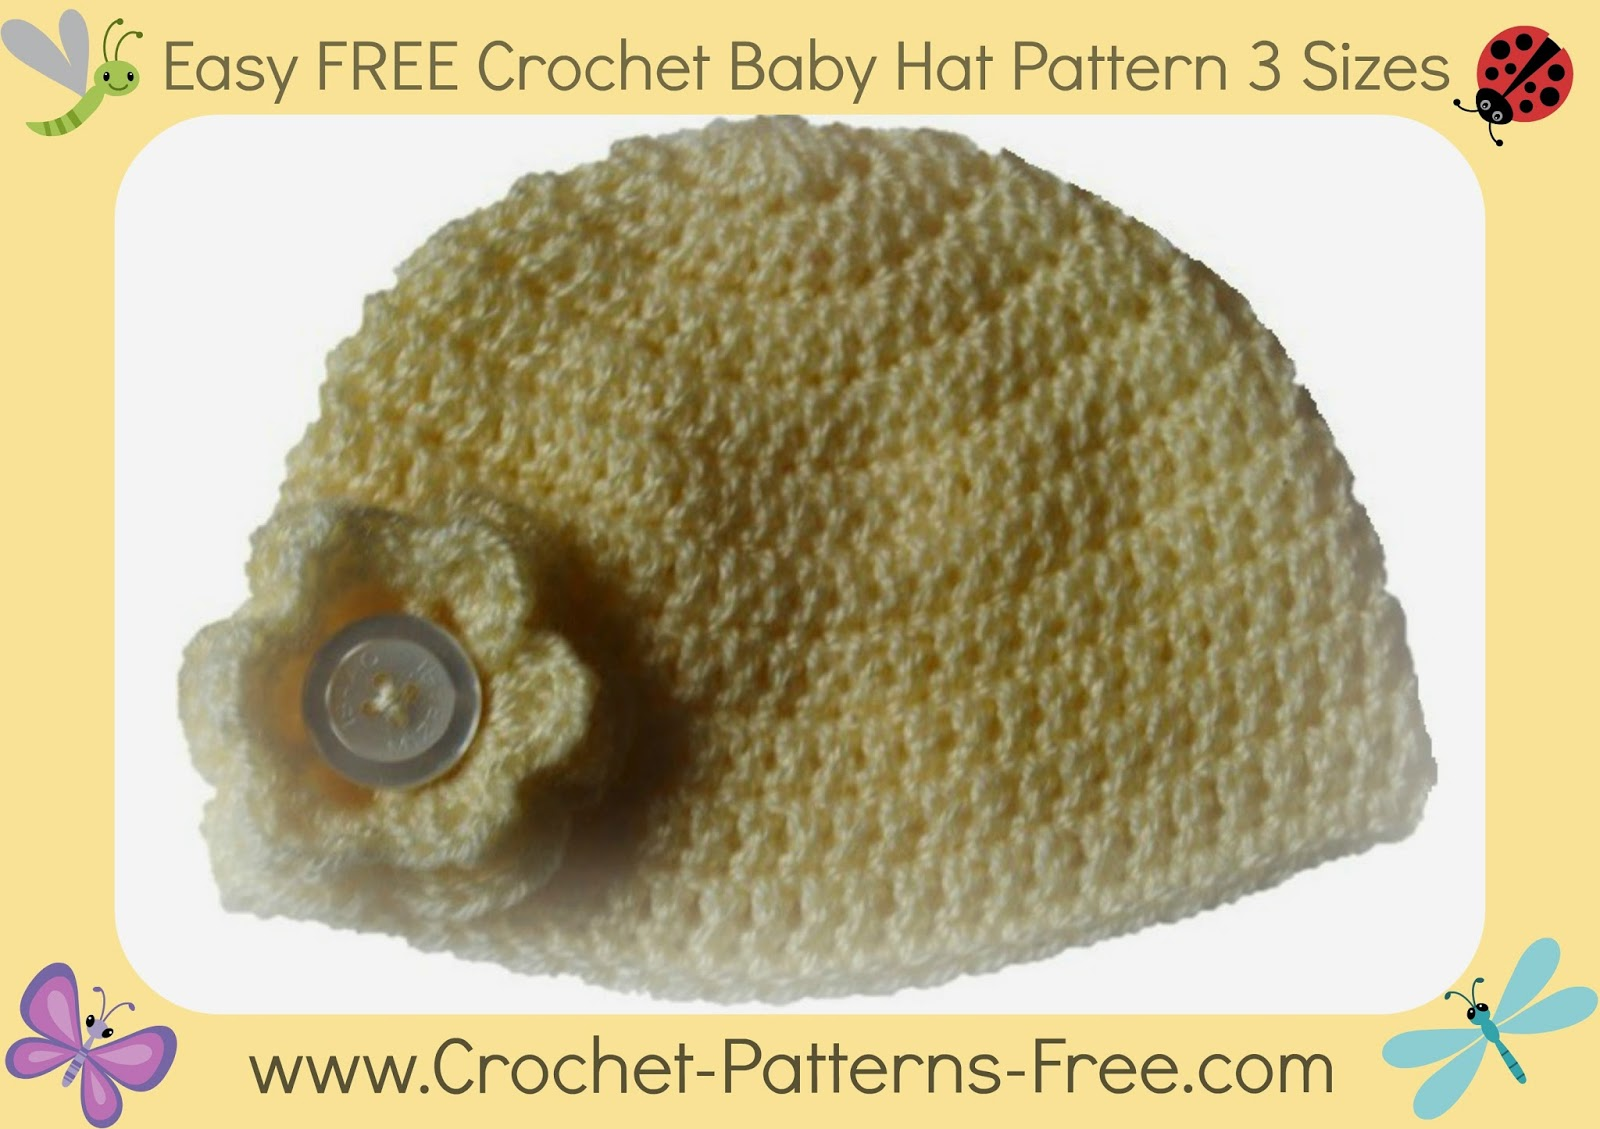 Crochet Baby Hat Booties Patterns Free : Free Crochet Pattern for Baby, Toddler and Child Hat ...